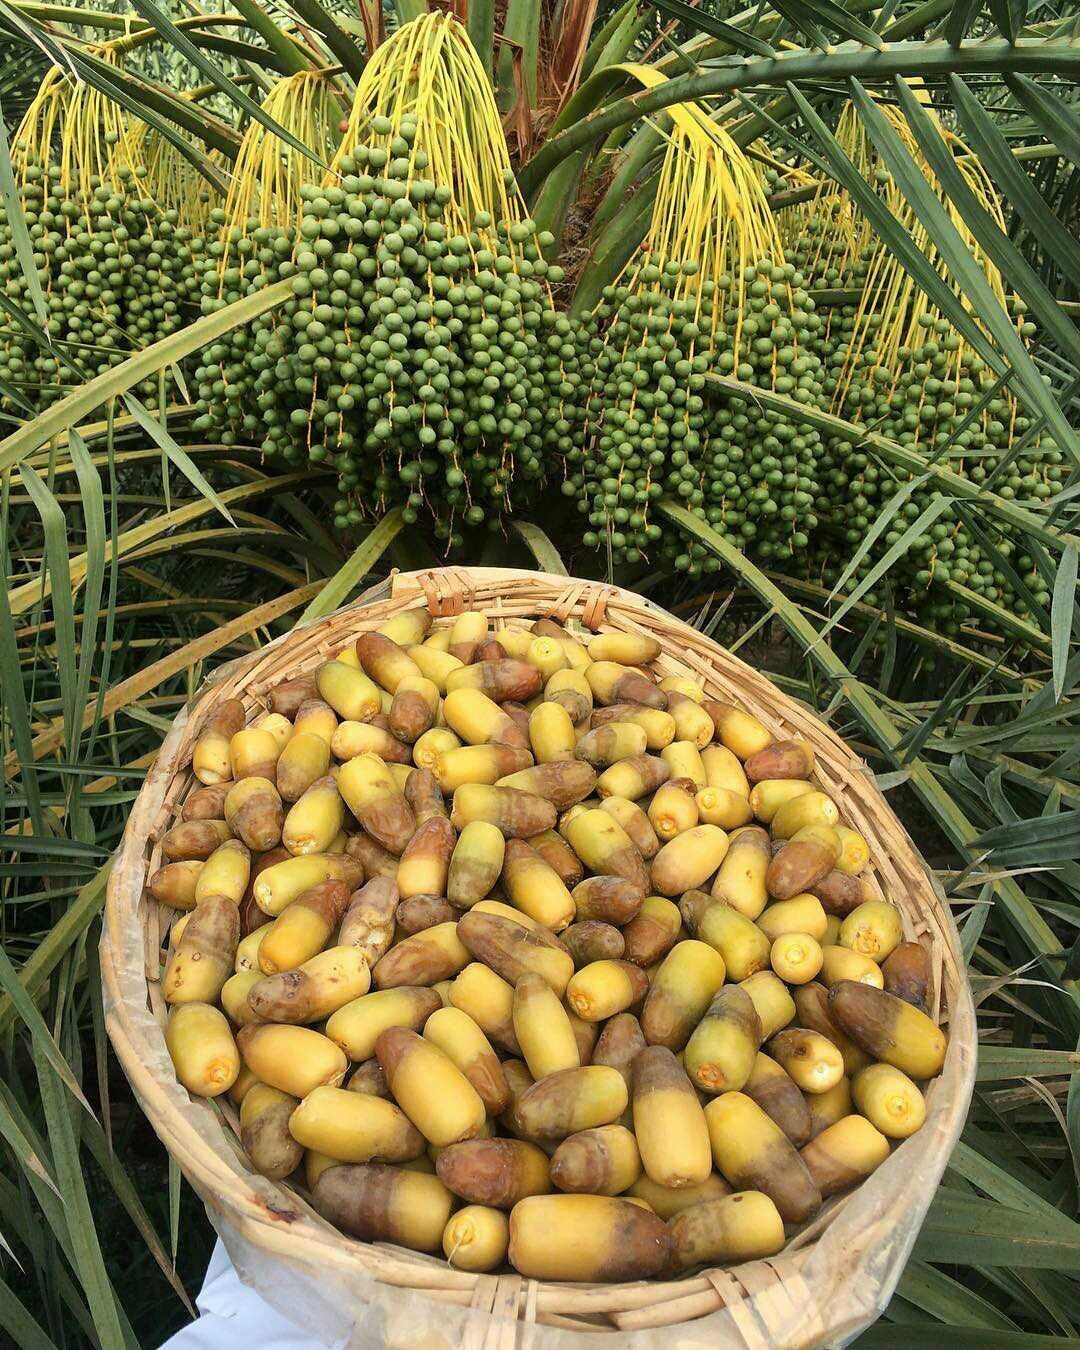 Pin by Masoud Al Nuamani on Oman in 2019 | Fruit, Exotic